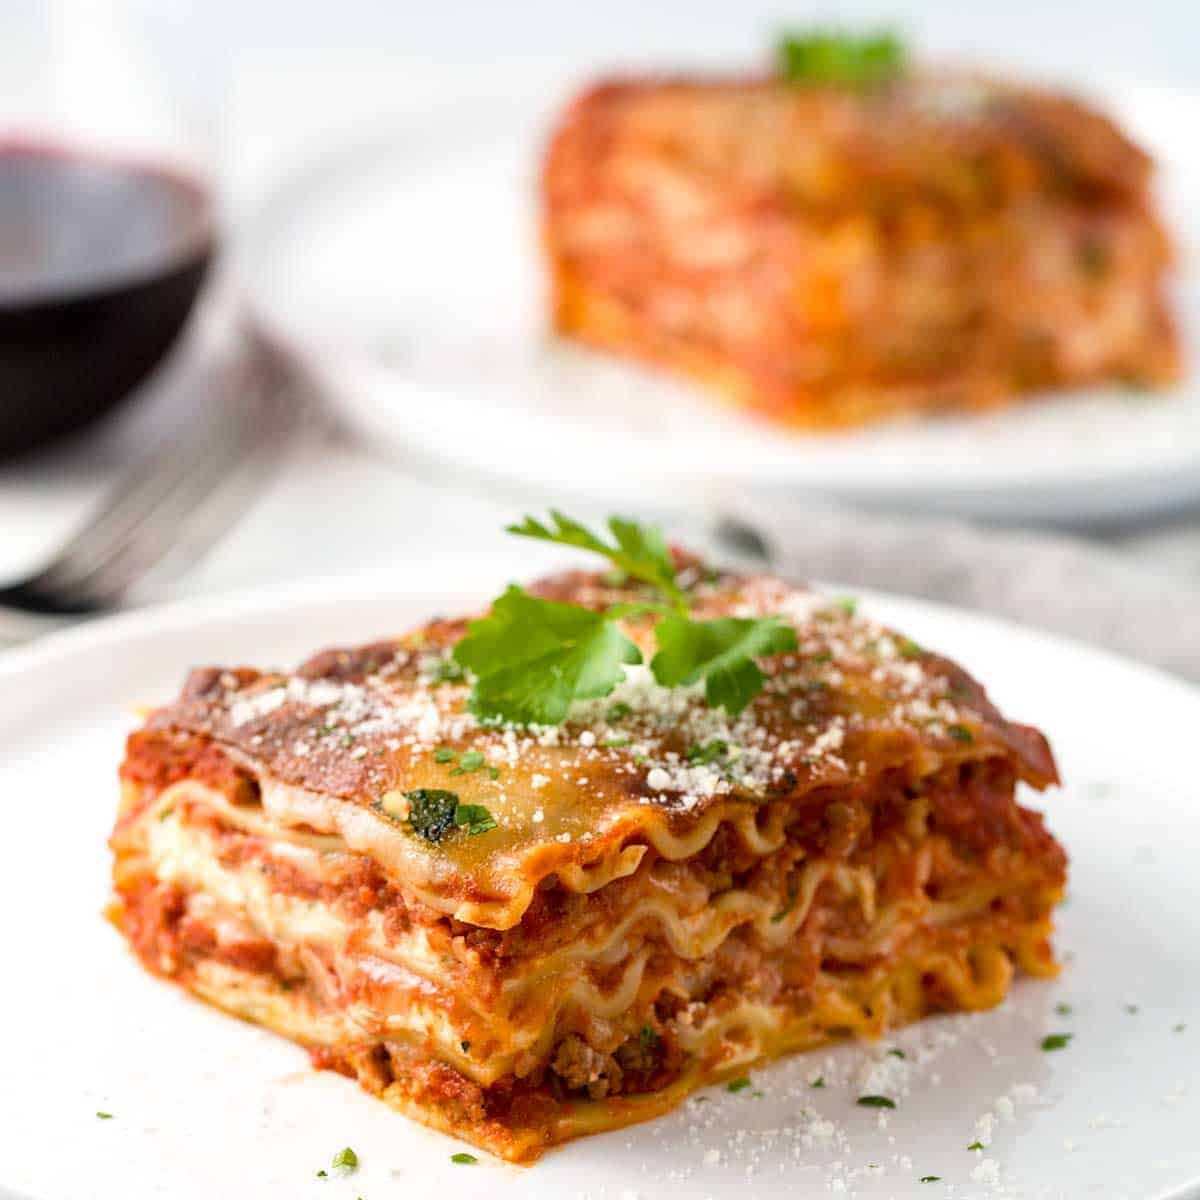 Easy Meat Lasagna Is The Perfect Quick Easy Comfort Food That Your Family And Friends Will Devour Tender Pi In 2020 Easy Meat Lasagna Meat Lasagna Easy Lasagna Recipe